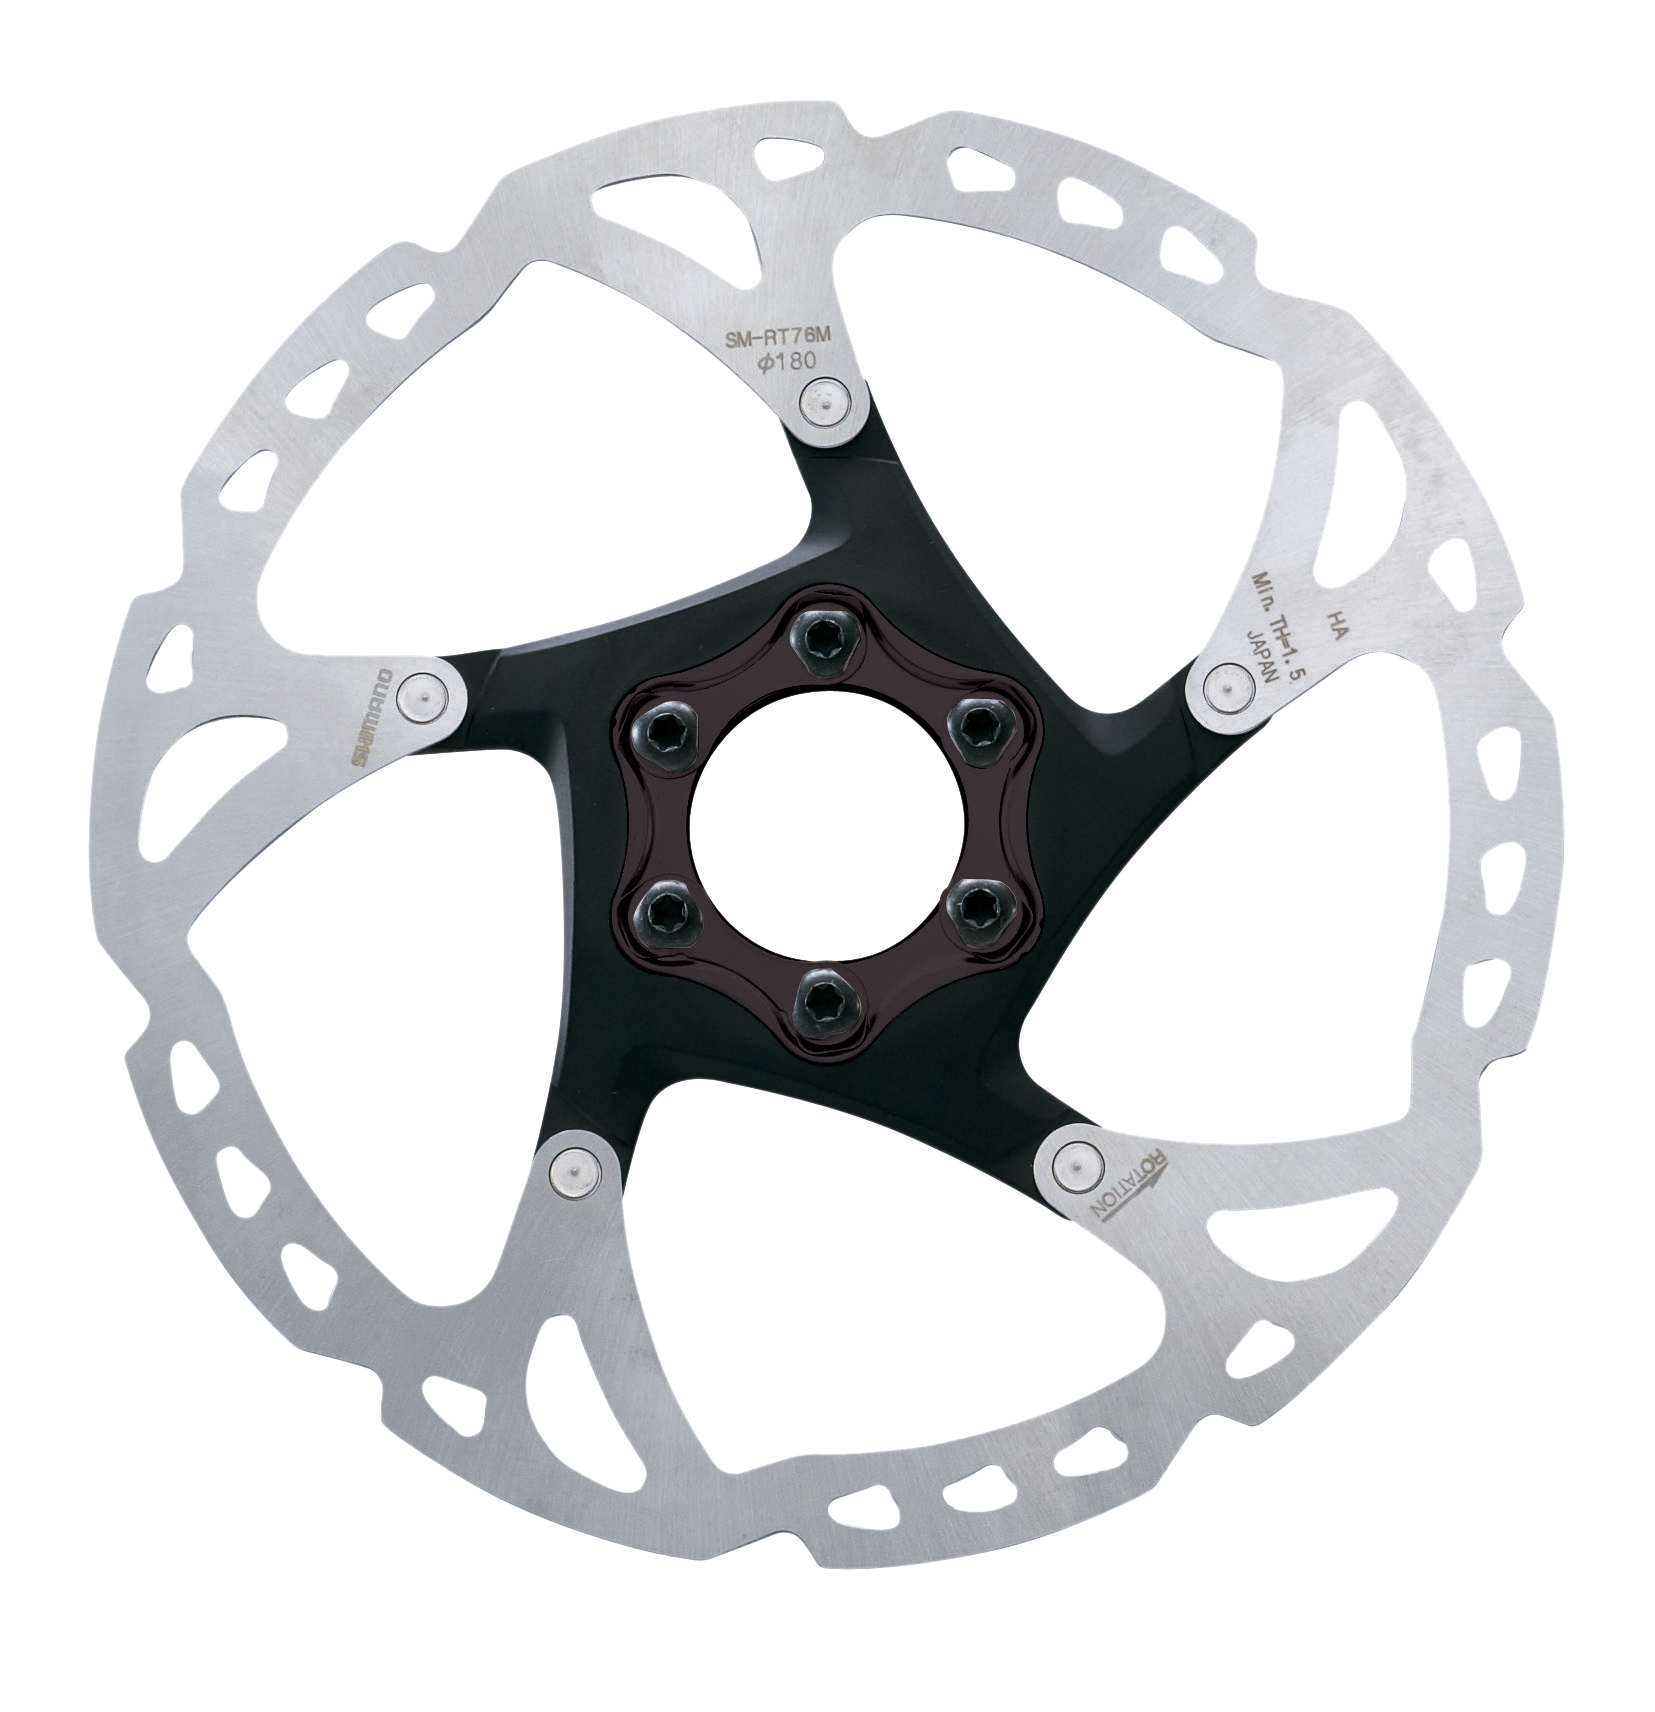 Bike Disc Brake Rotors Rotor 160 Mm Avid G3cs